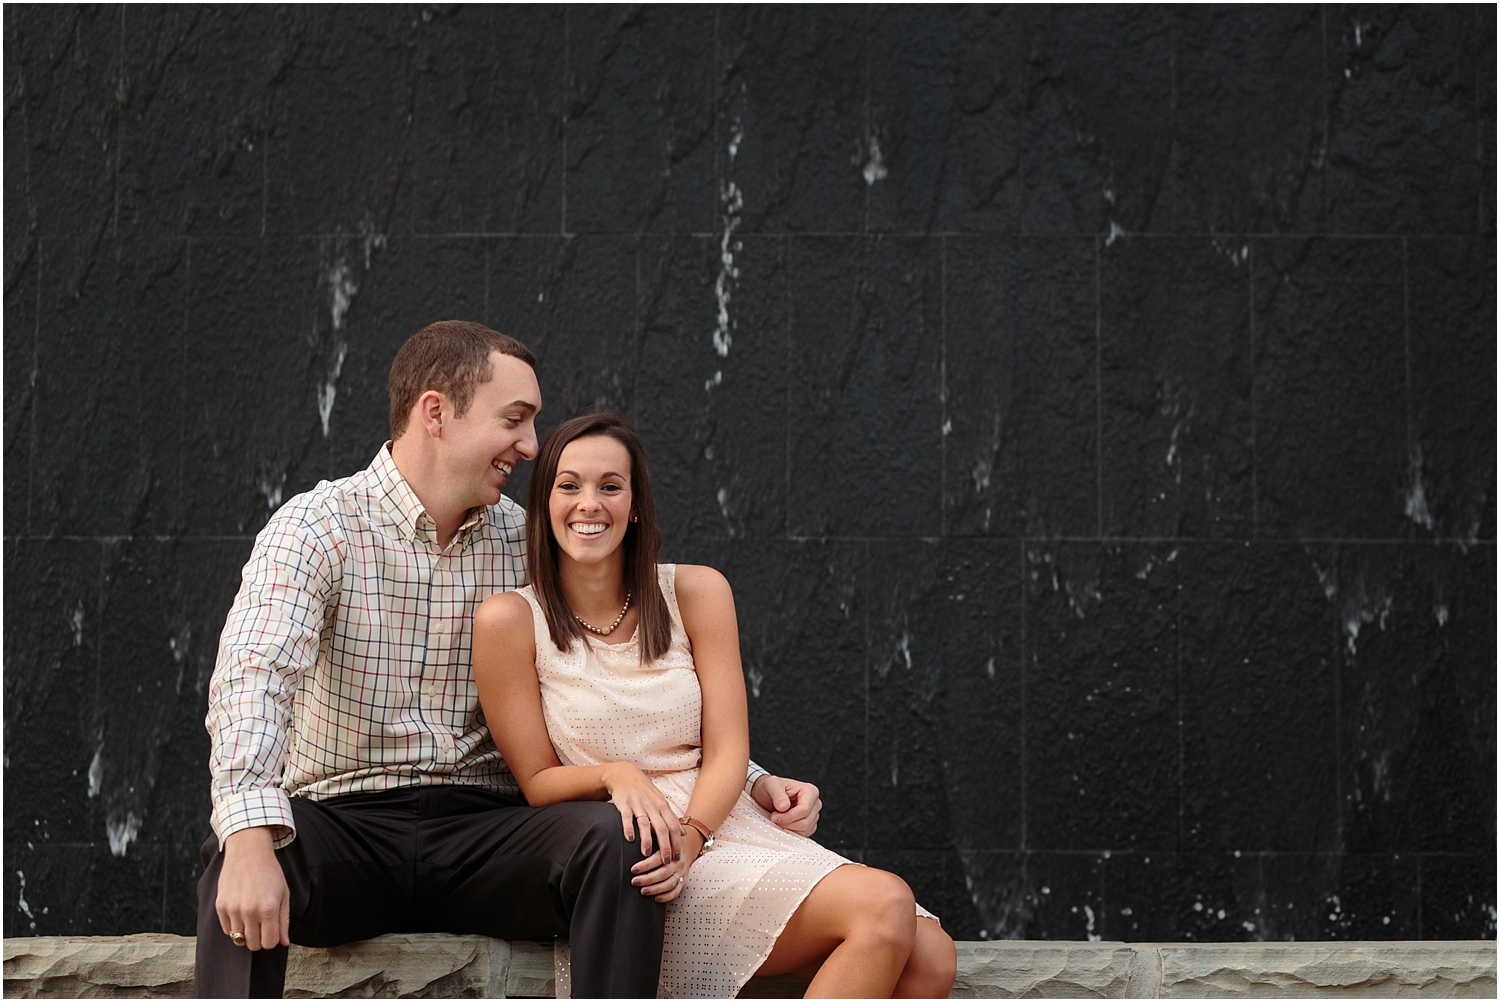 fall-engagement-session-downtown-greenville-photography-17_blog.jpg